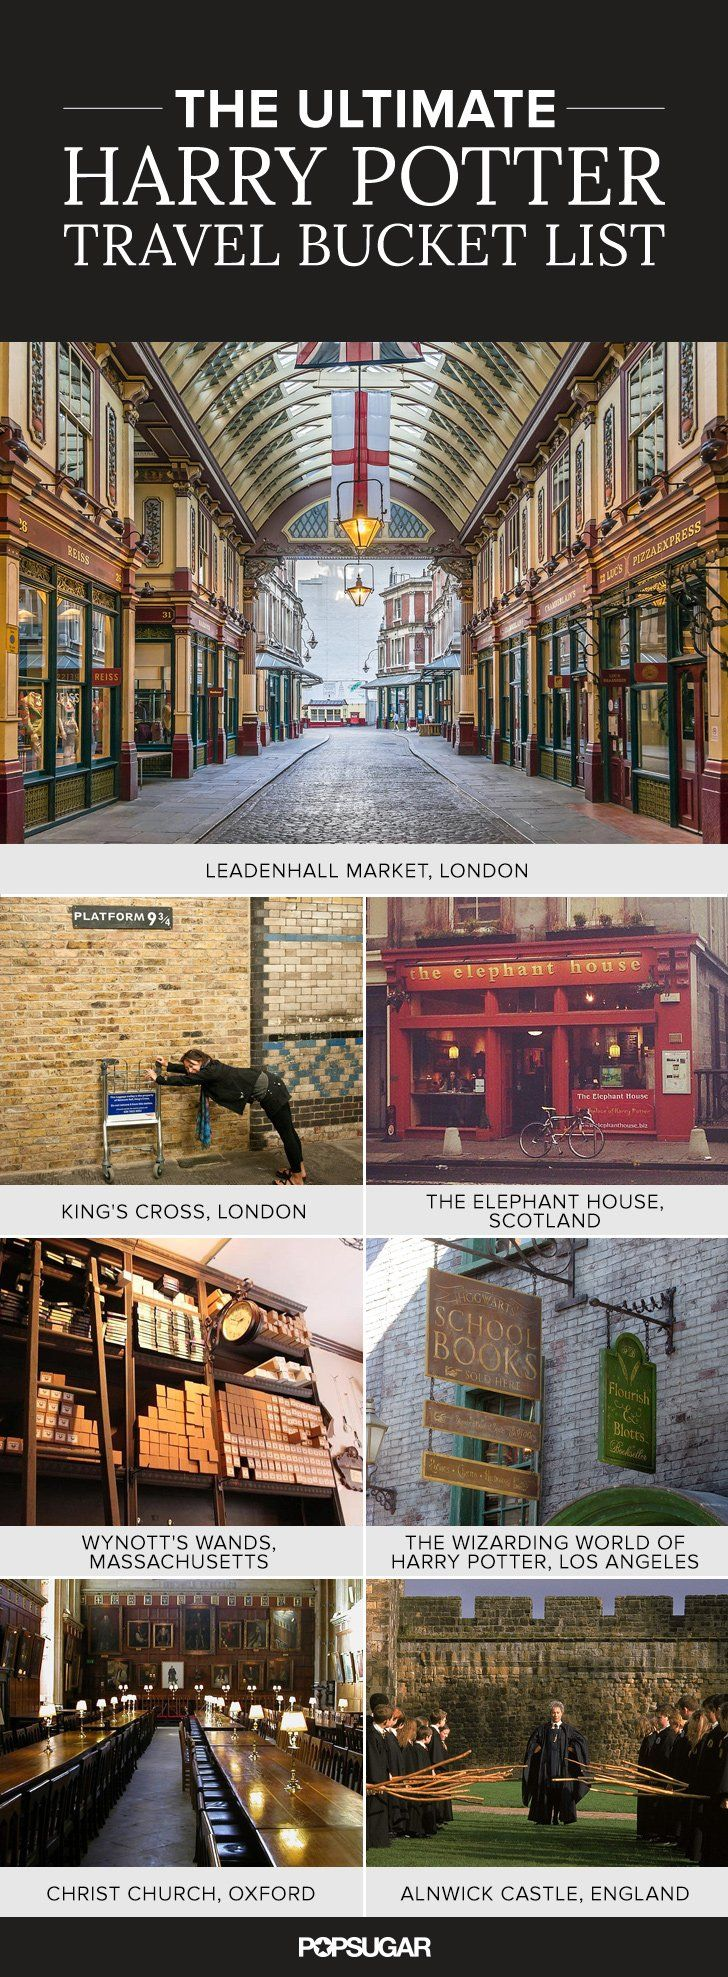 The Ultimate Harry Potter Travel Bucket List Leaden hall market Kings cross CHECK